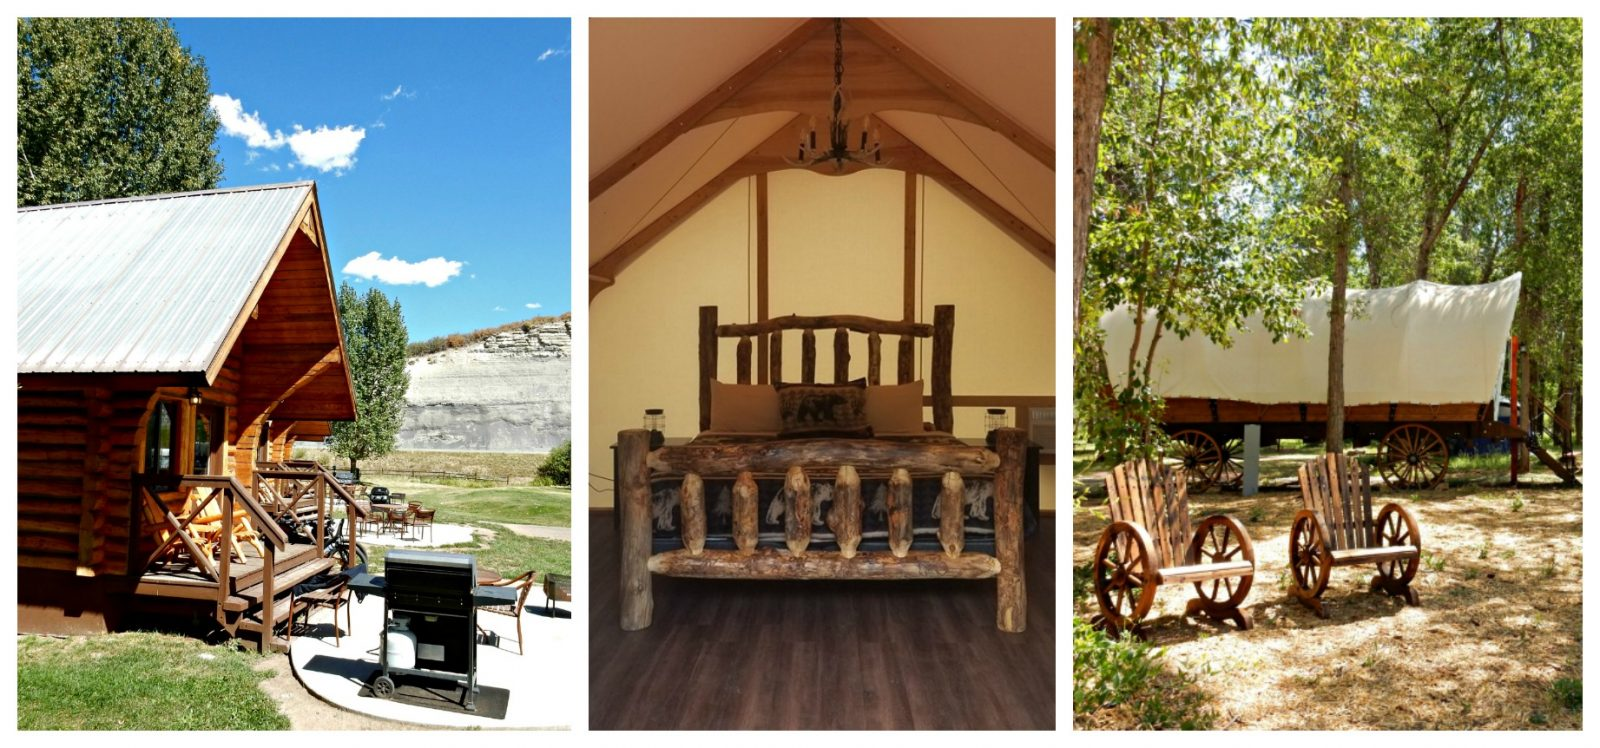 Colorado Dream List: Create the Rocky Mountain Glamping Vacation